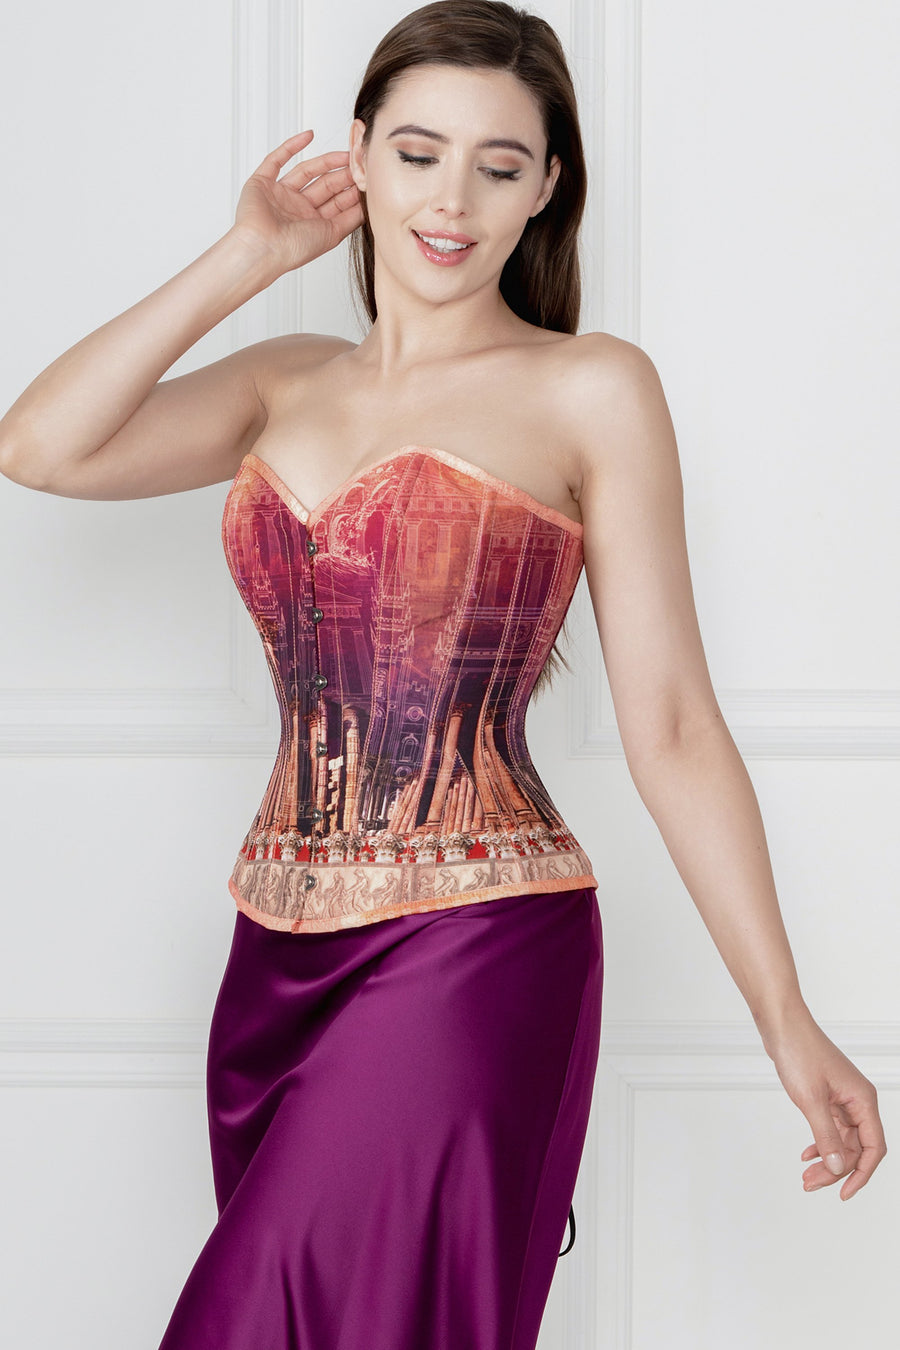 ARCHITECTURAL PRINT WAIST TAMING CORSET